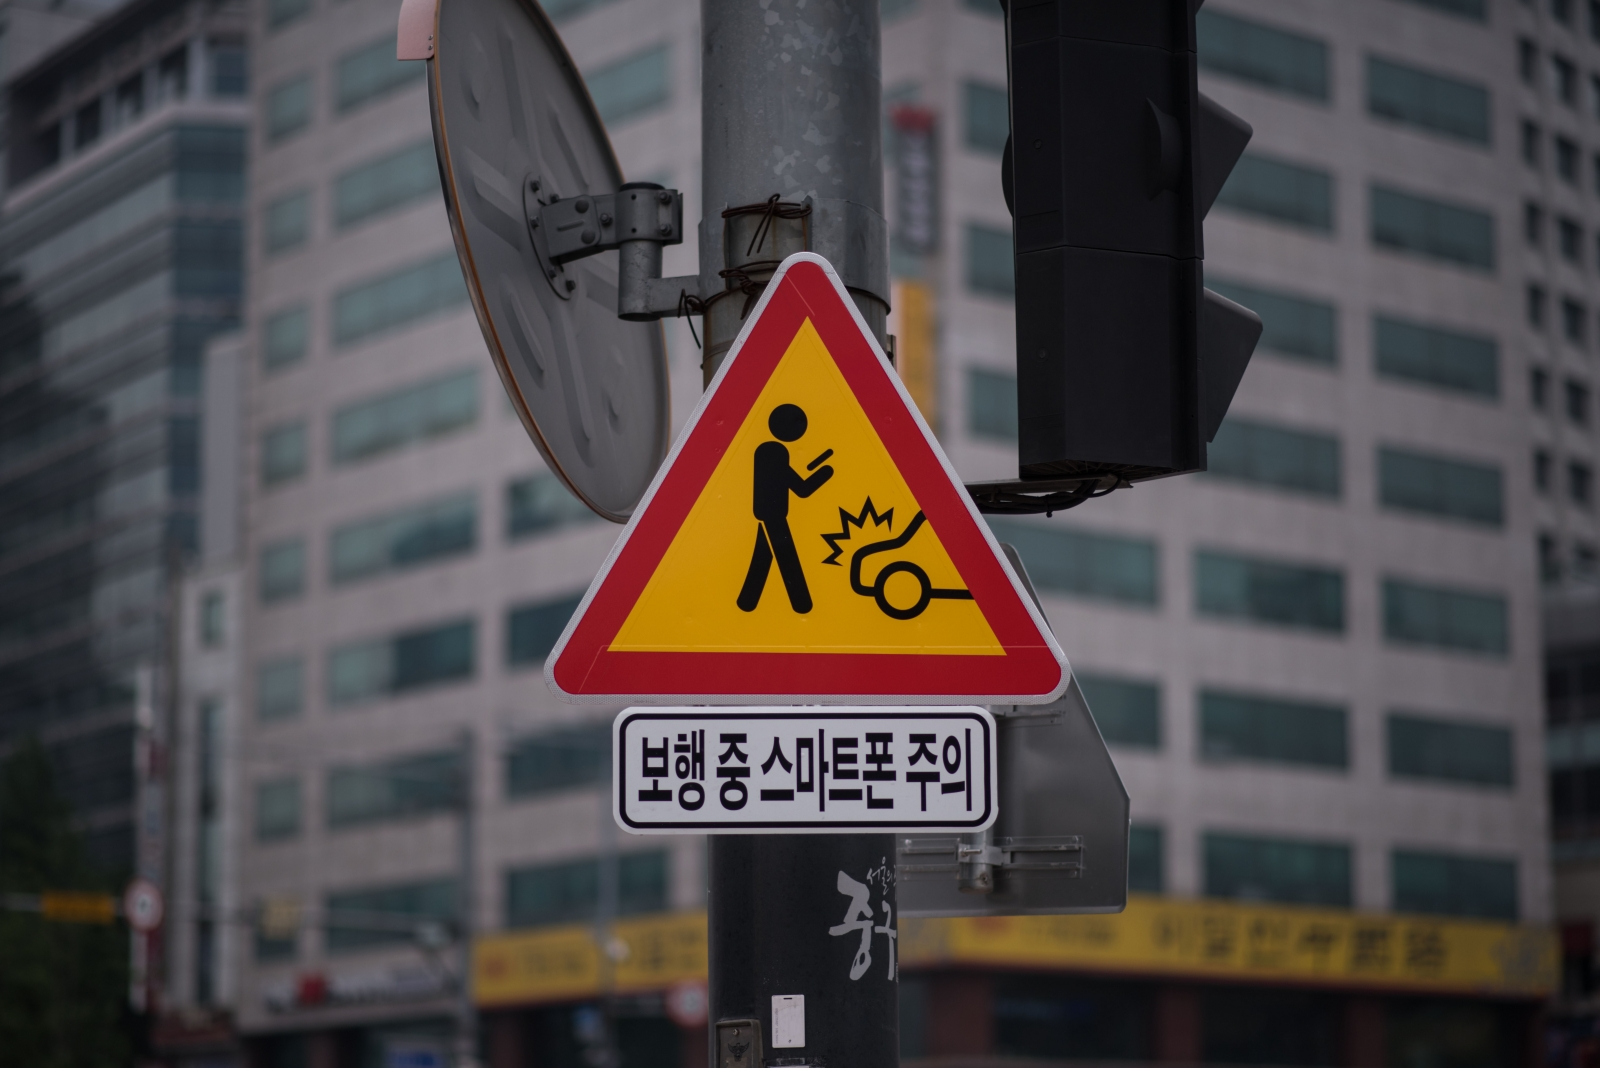 Warning sign for texting pedestrians